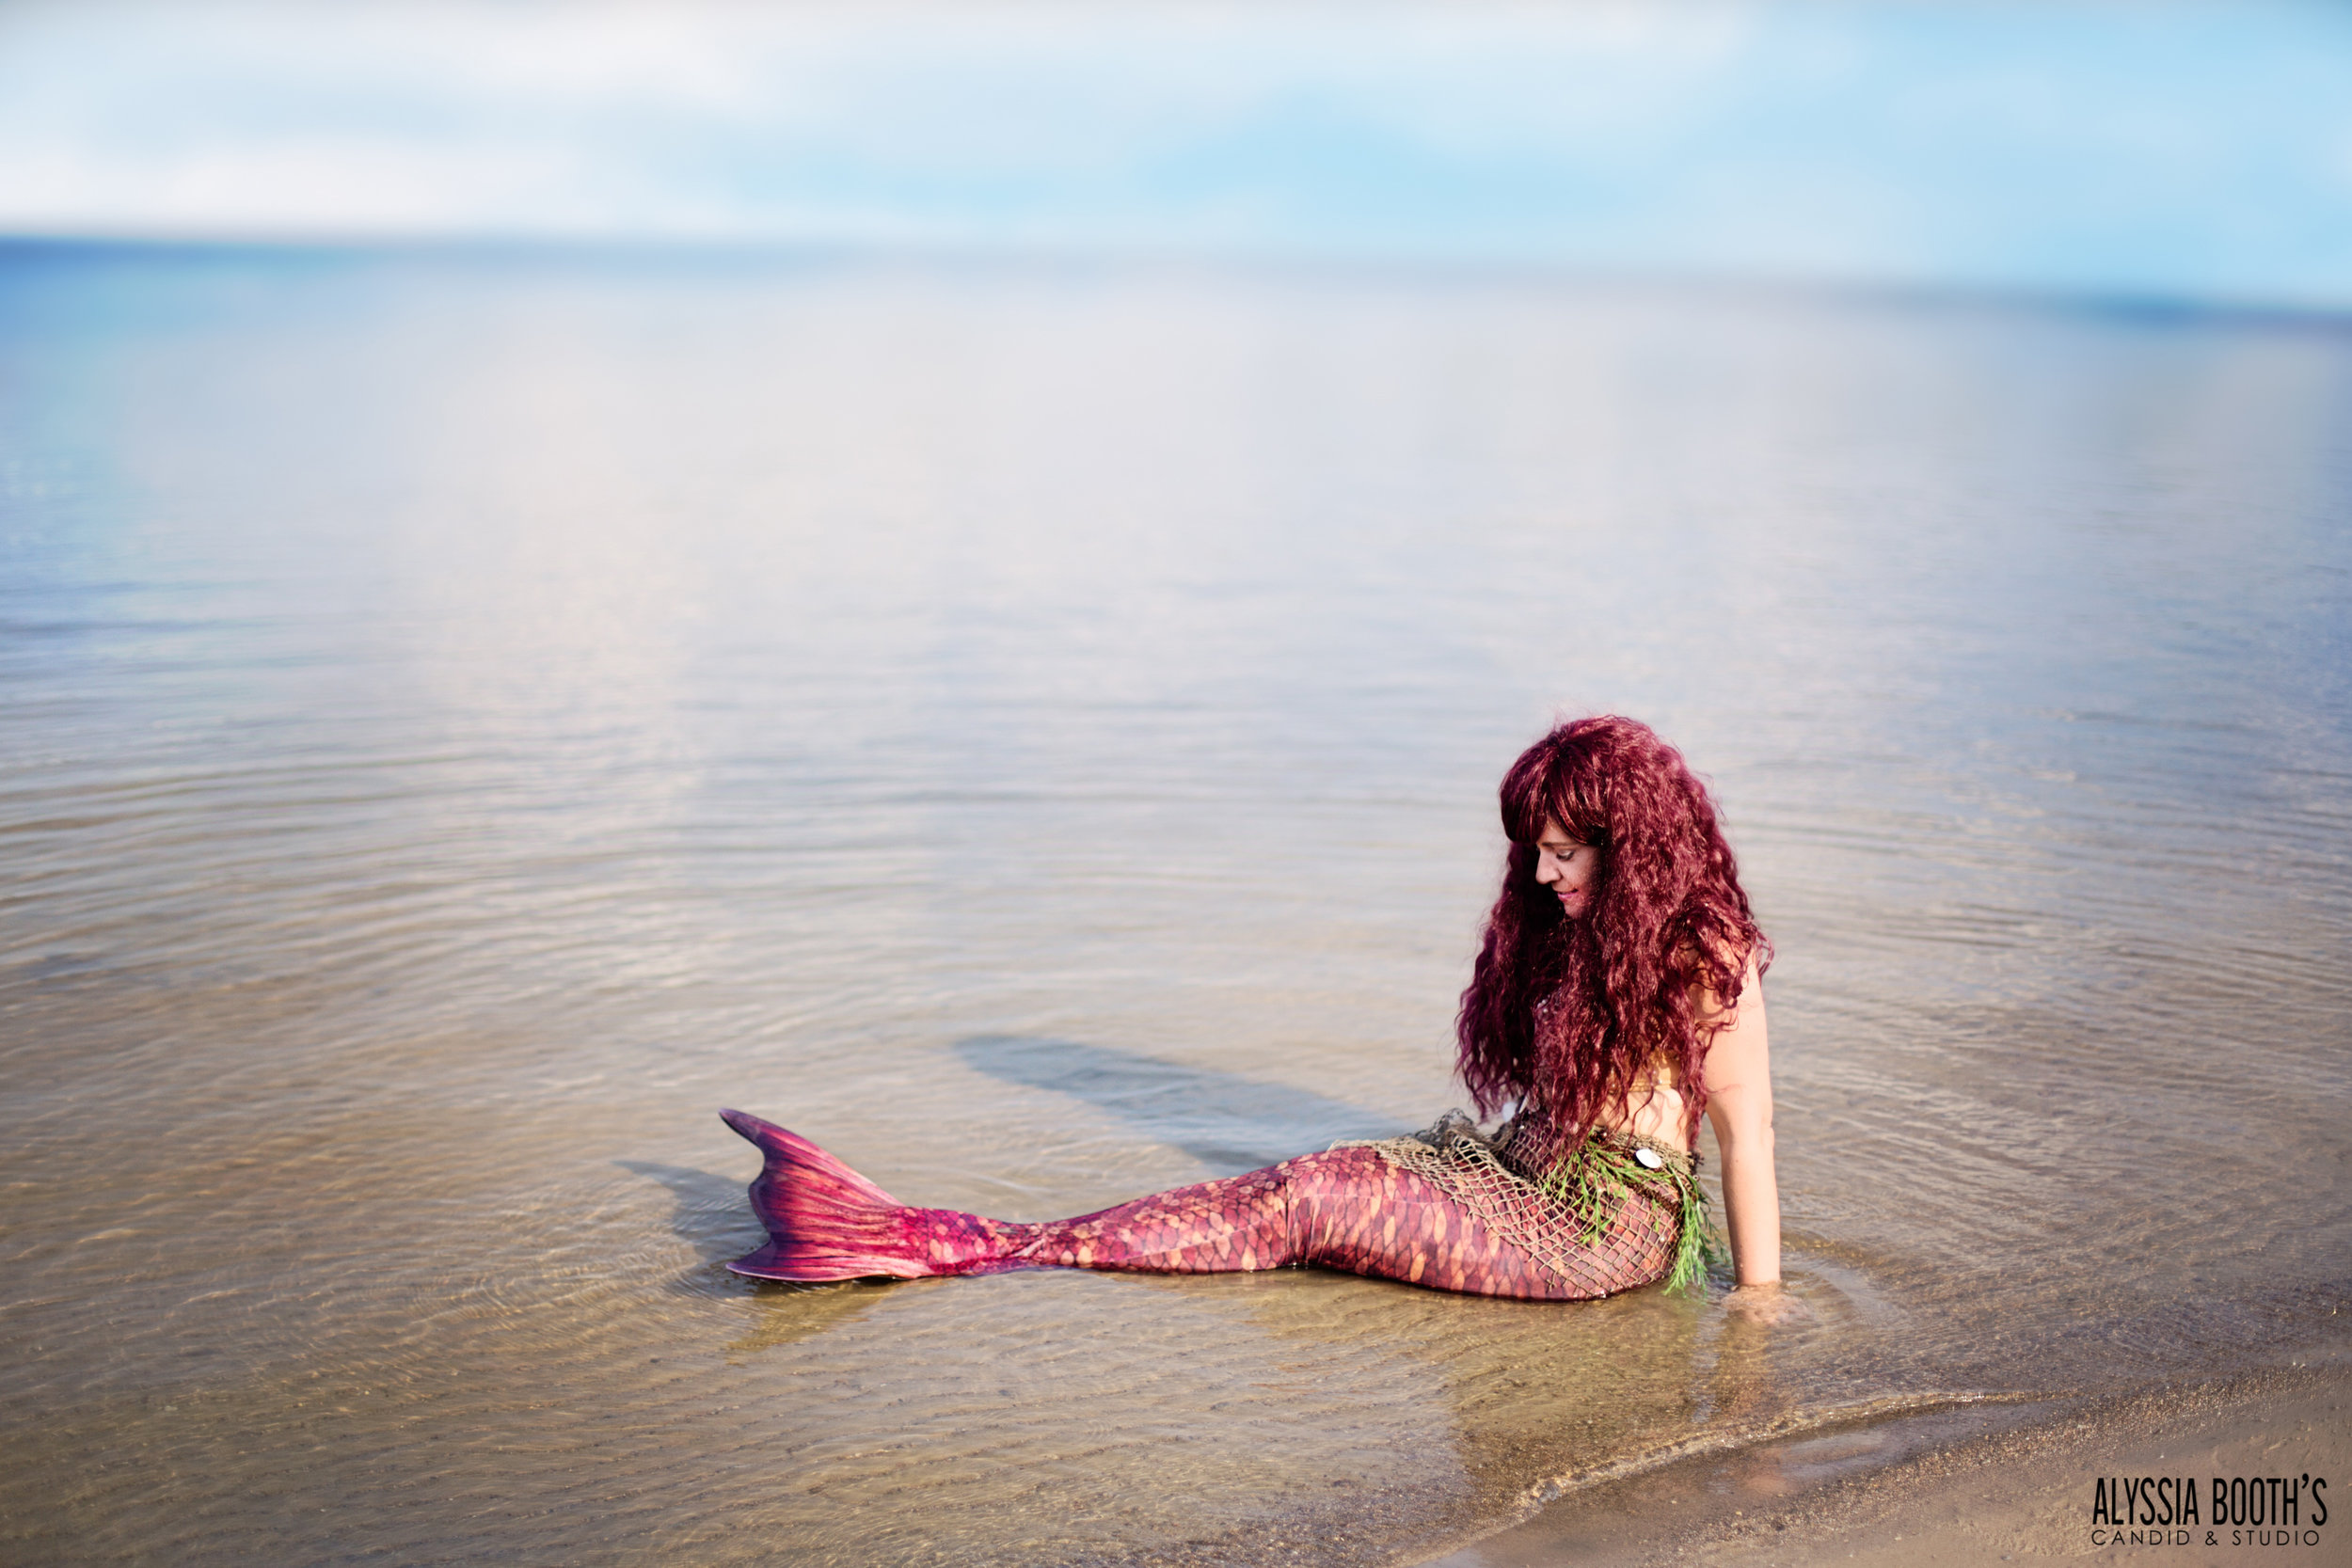 Mermaid at the beach | Alyssia Booth's Candid and Studio | Michigan